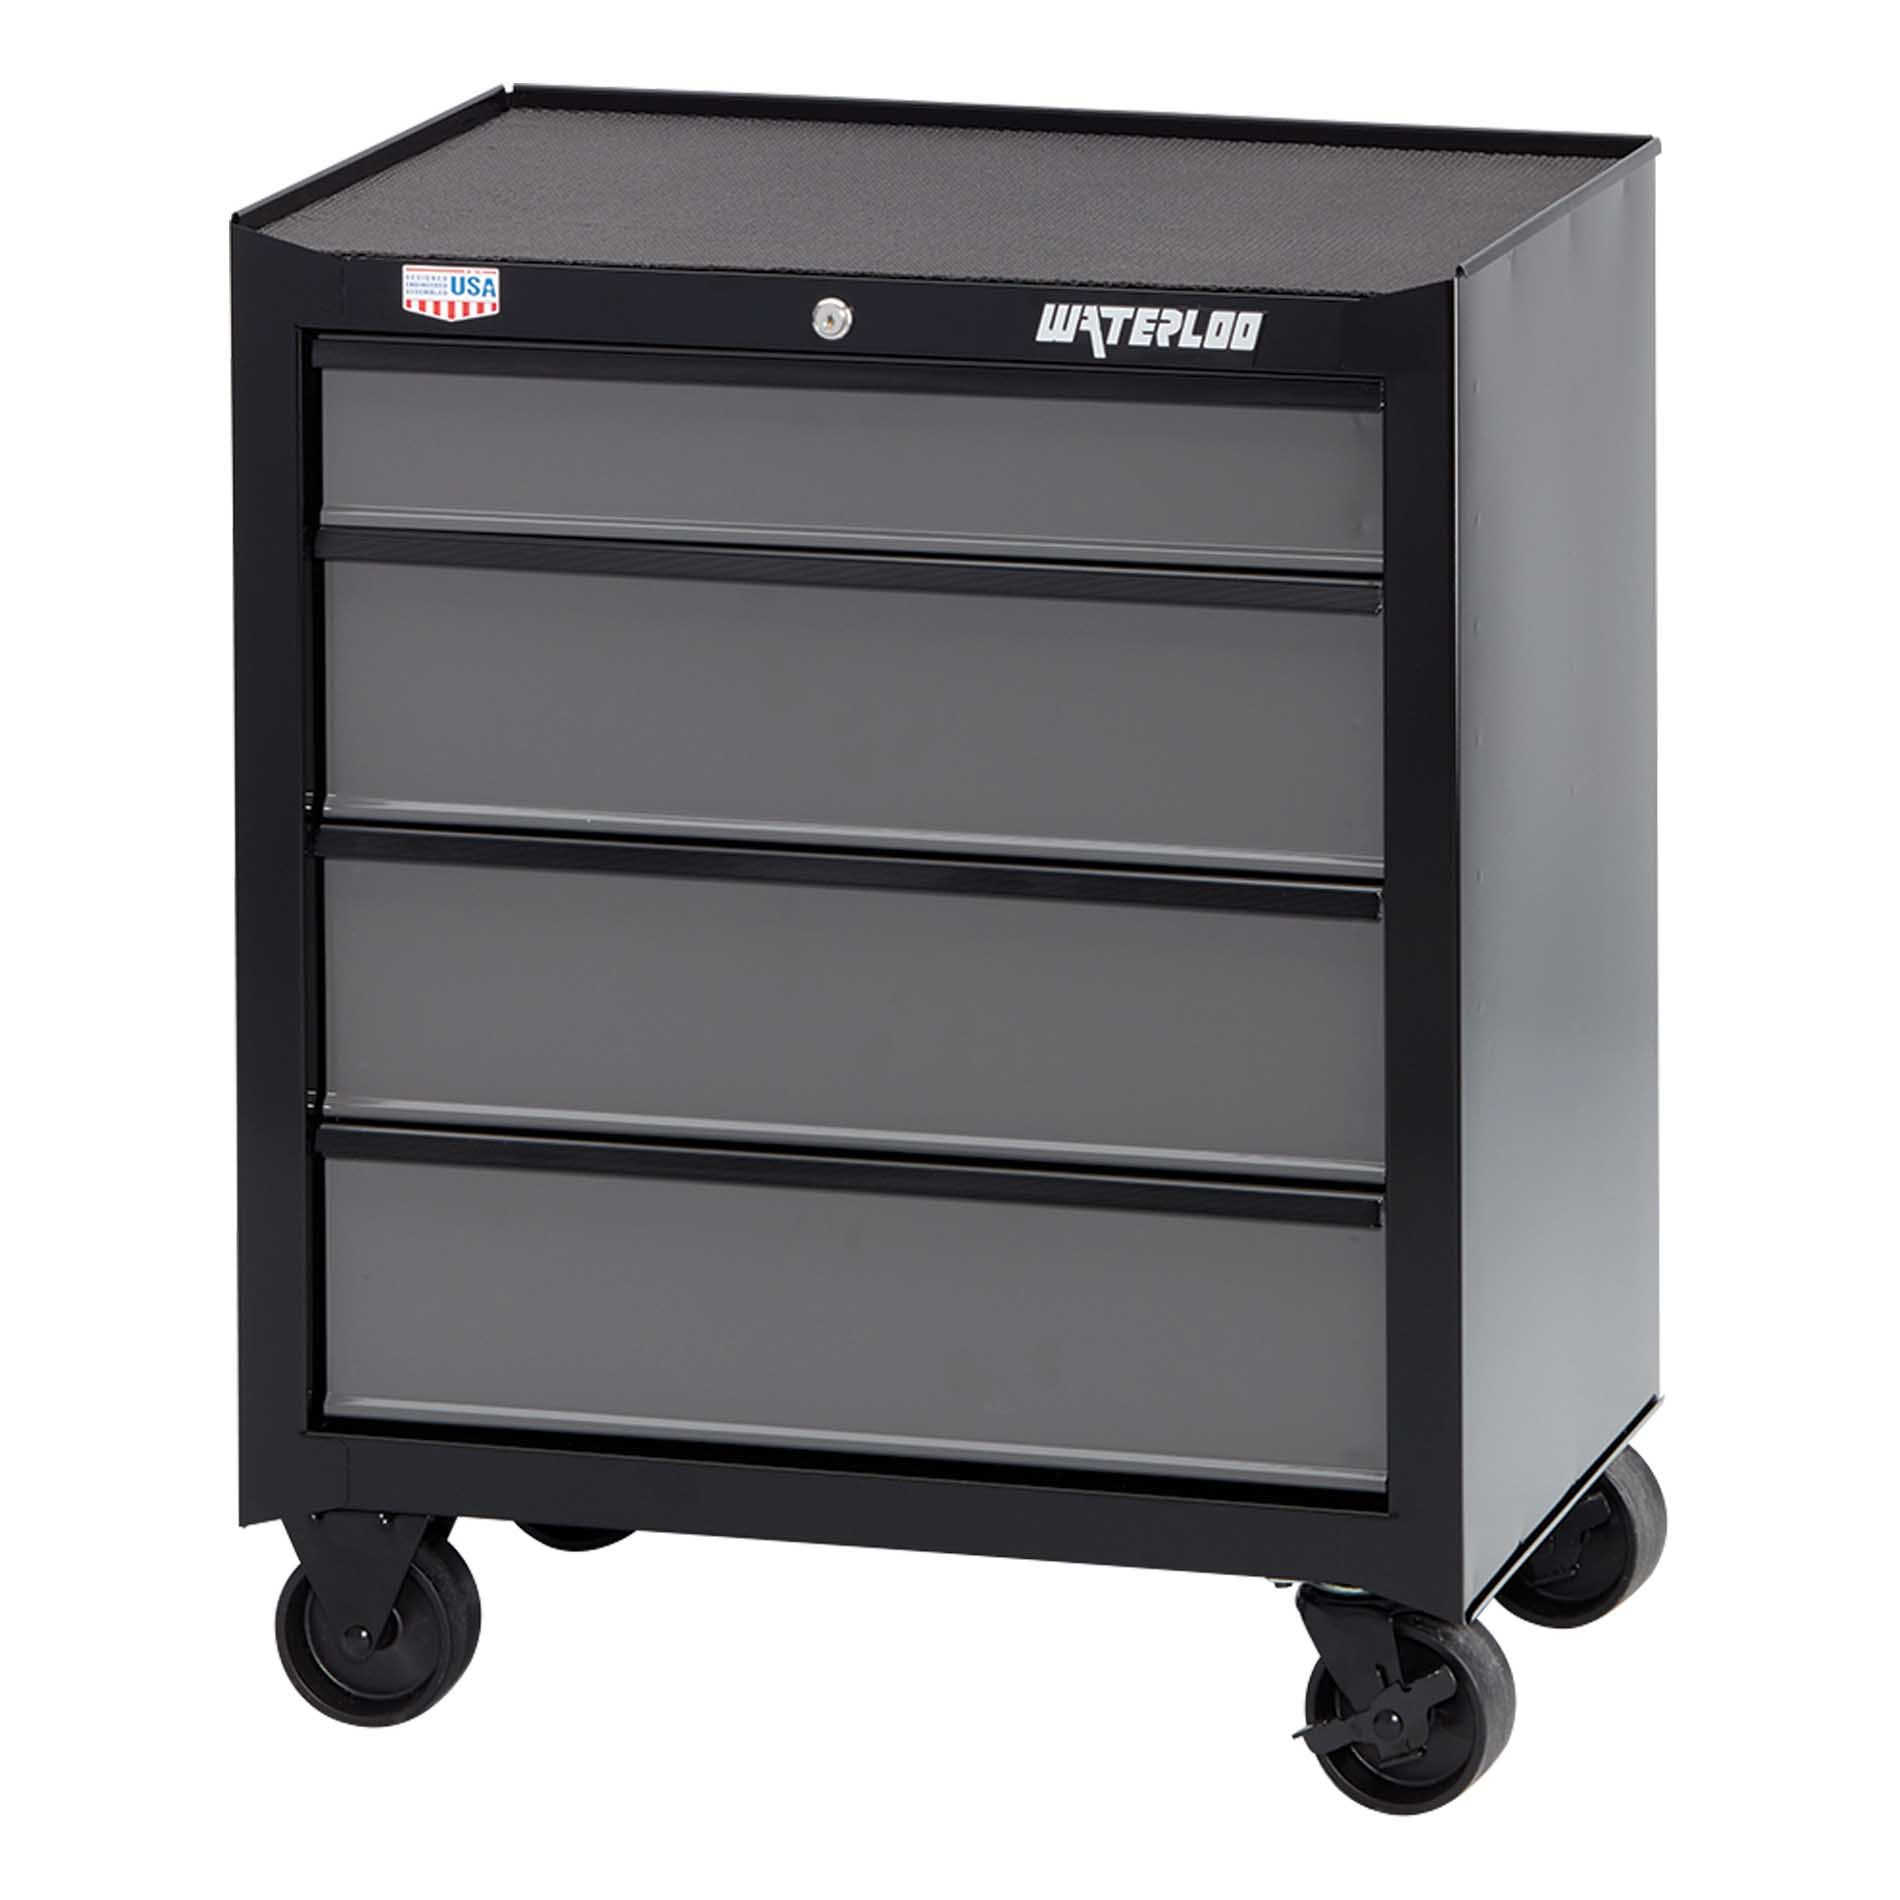 Waterloo W100 Series 4-Drawer Rolling Tool Cabinet, 26'' - Designed, Engineered & Assembled In the USA by Waterloo